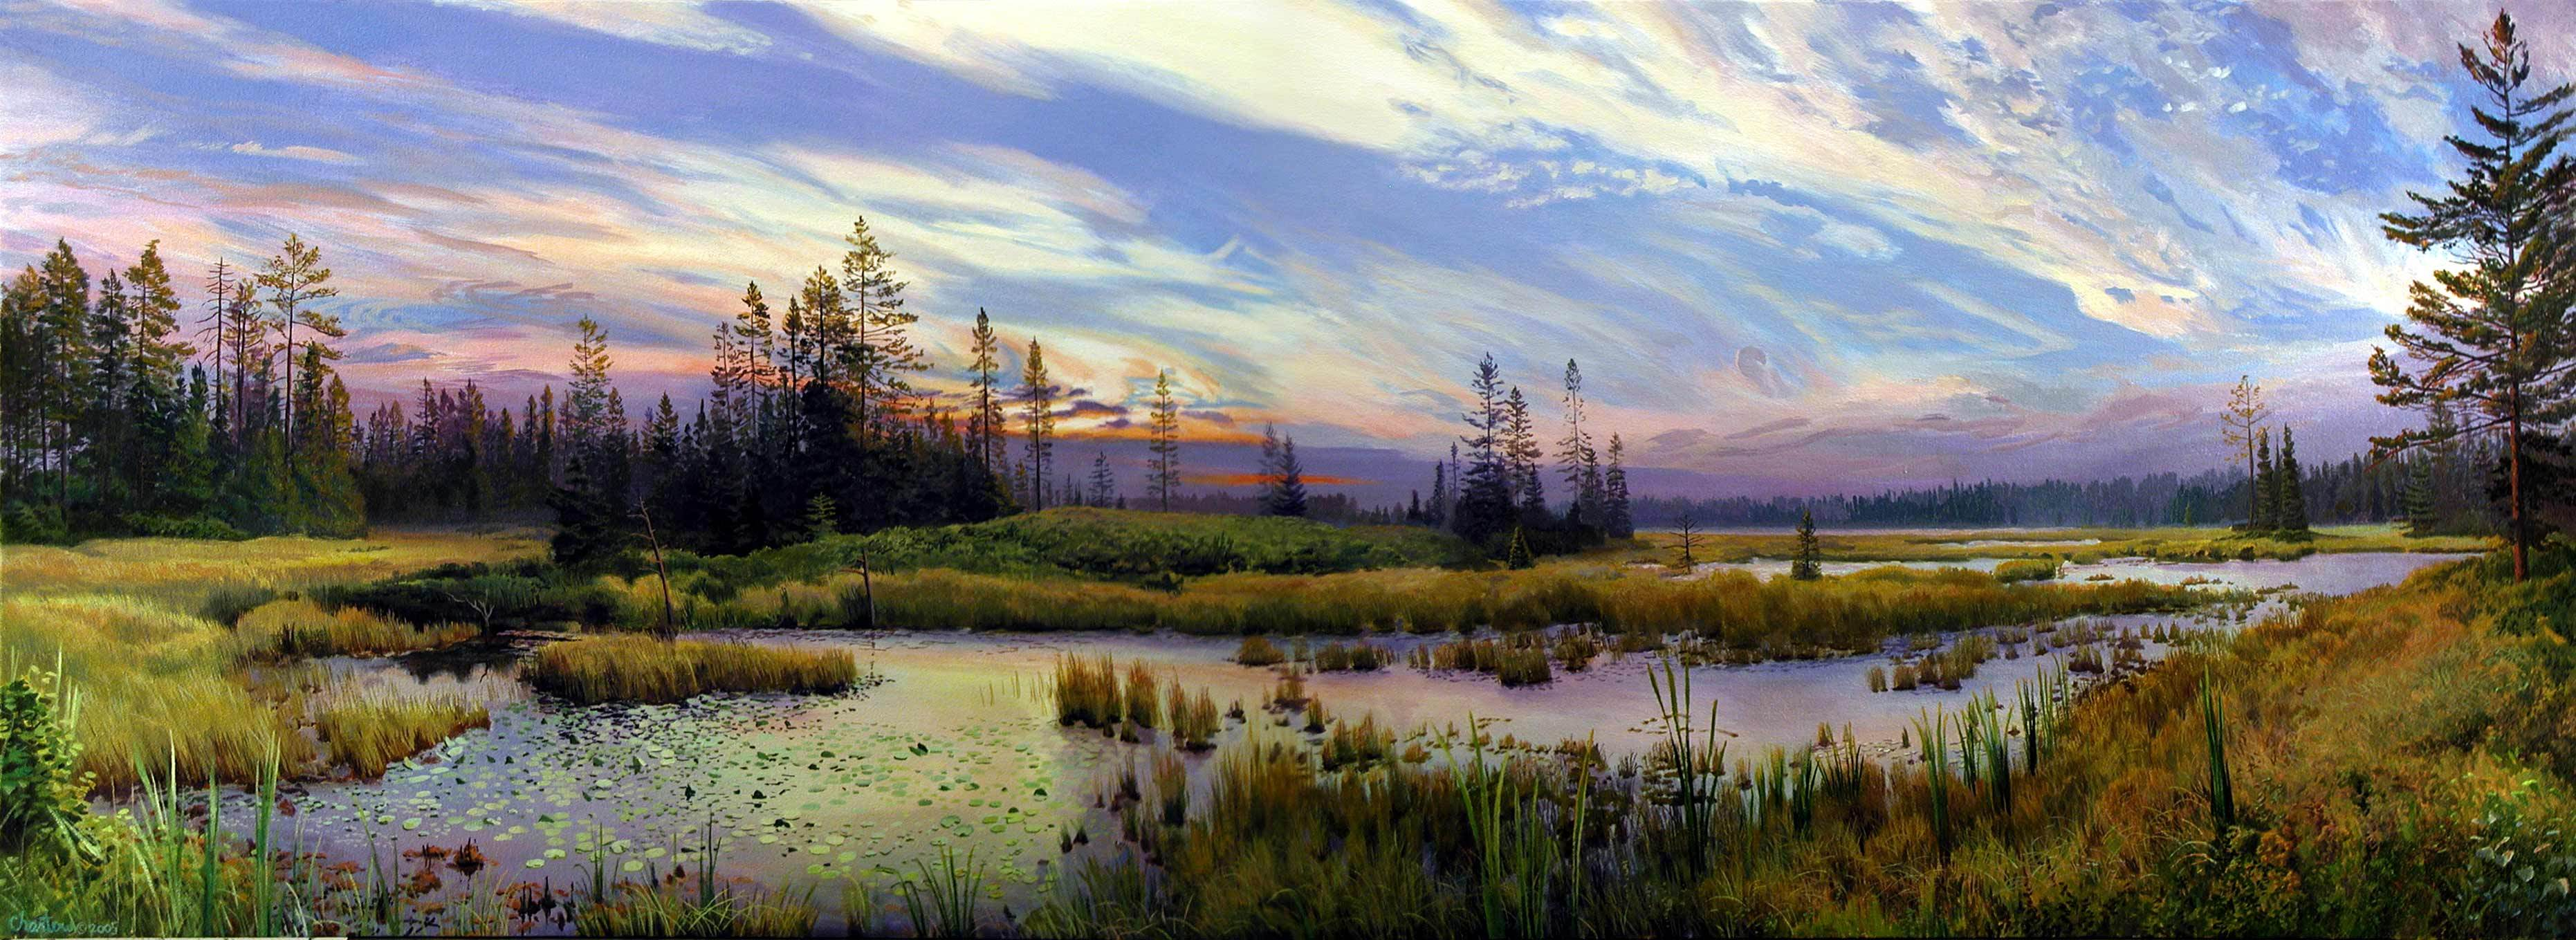 oil paintings michigan landscape nature painting landscapes hd natural wildlife canvas forest wallpapers seney trees refuge houses national arthur peninsula